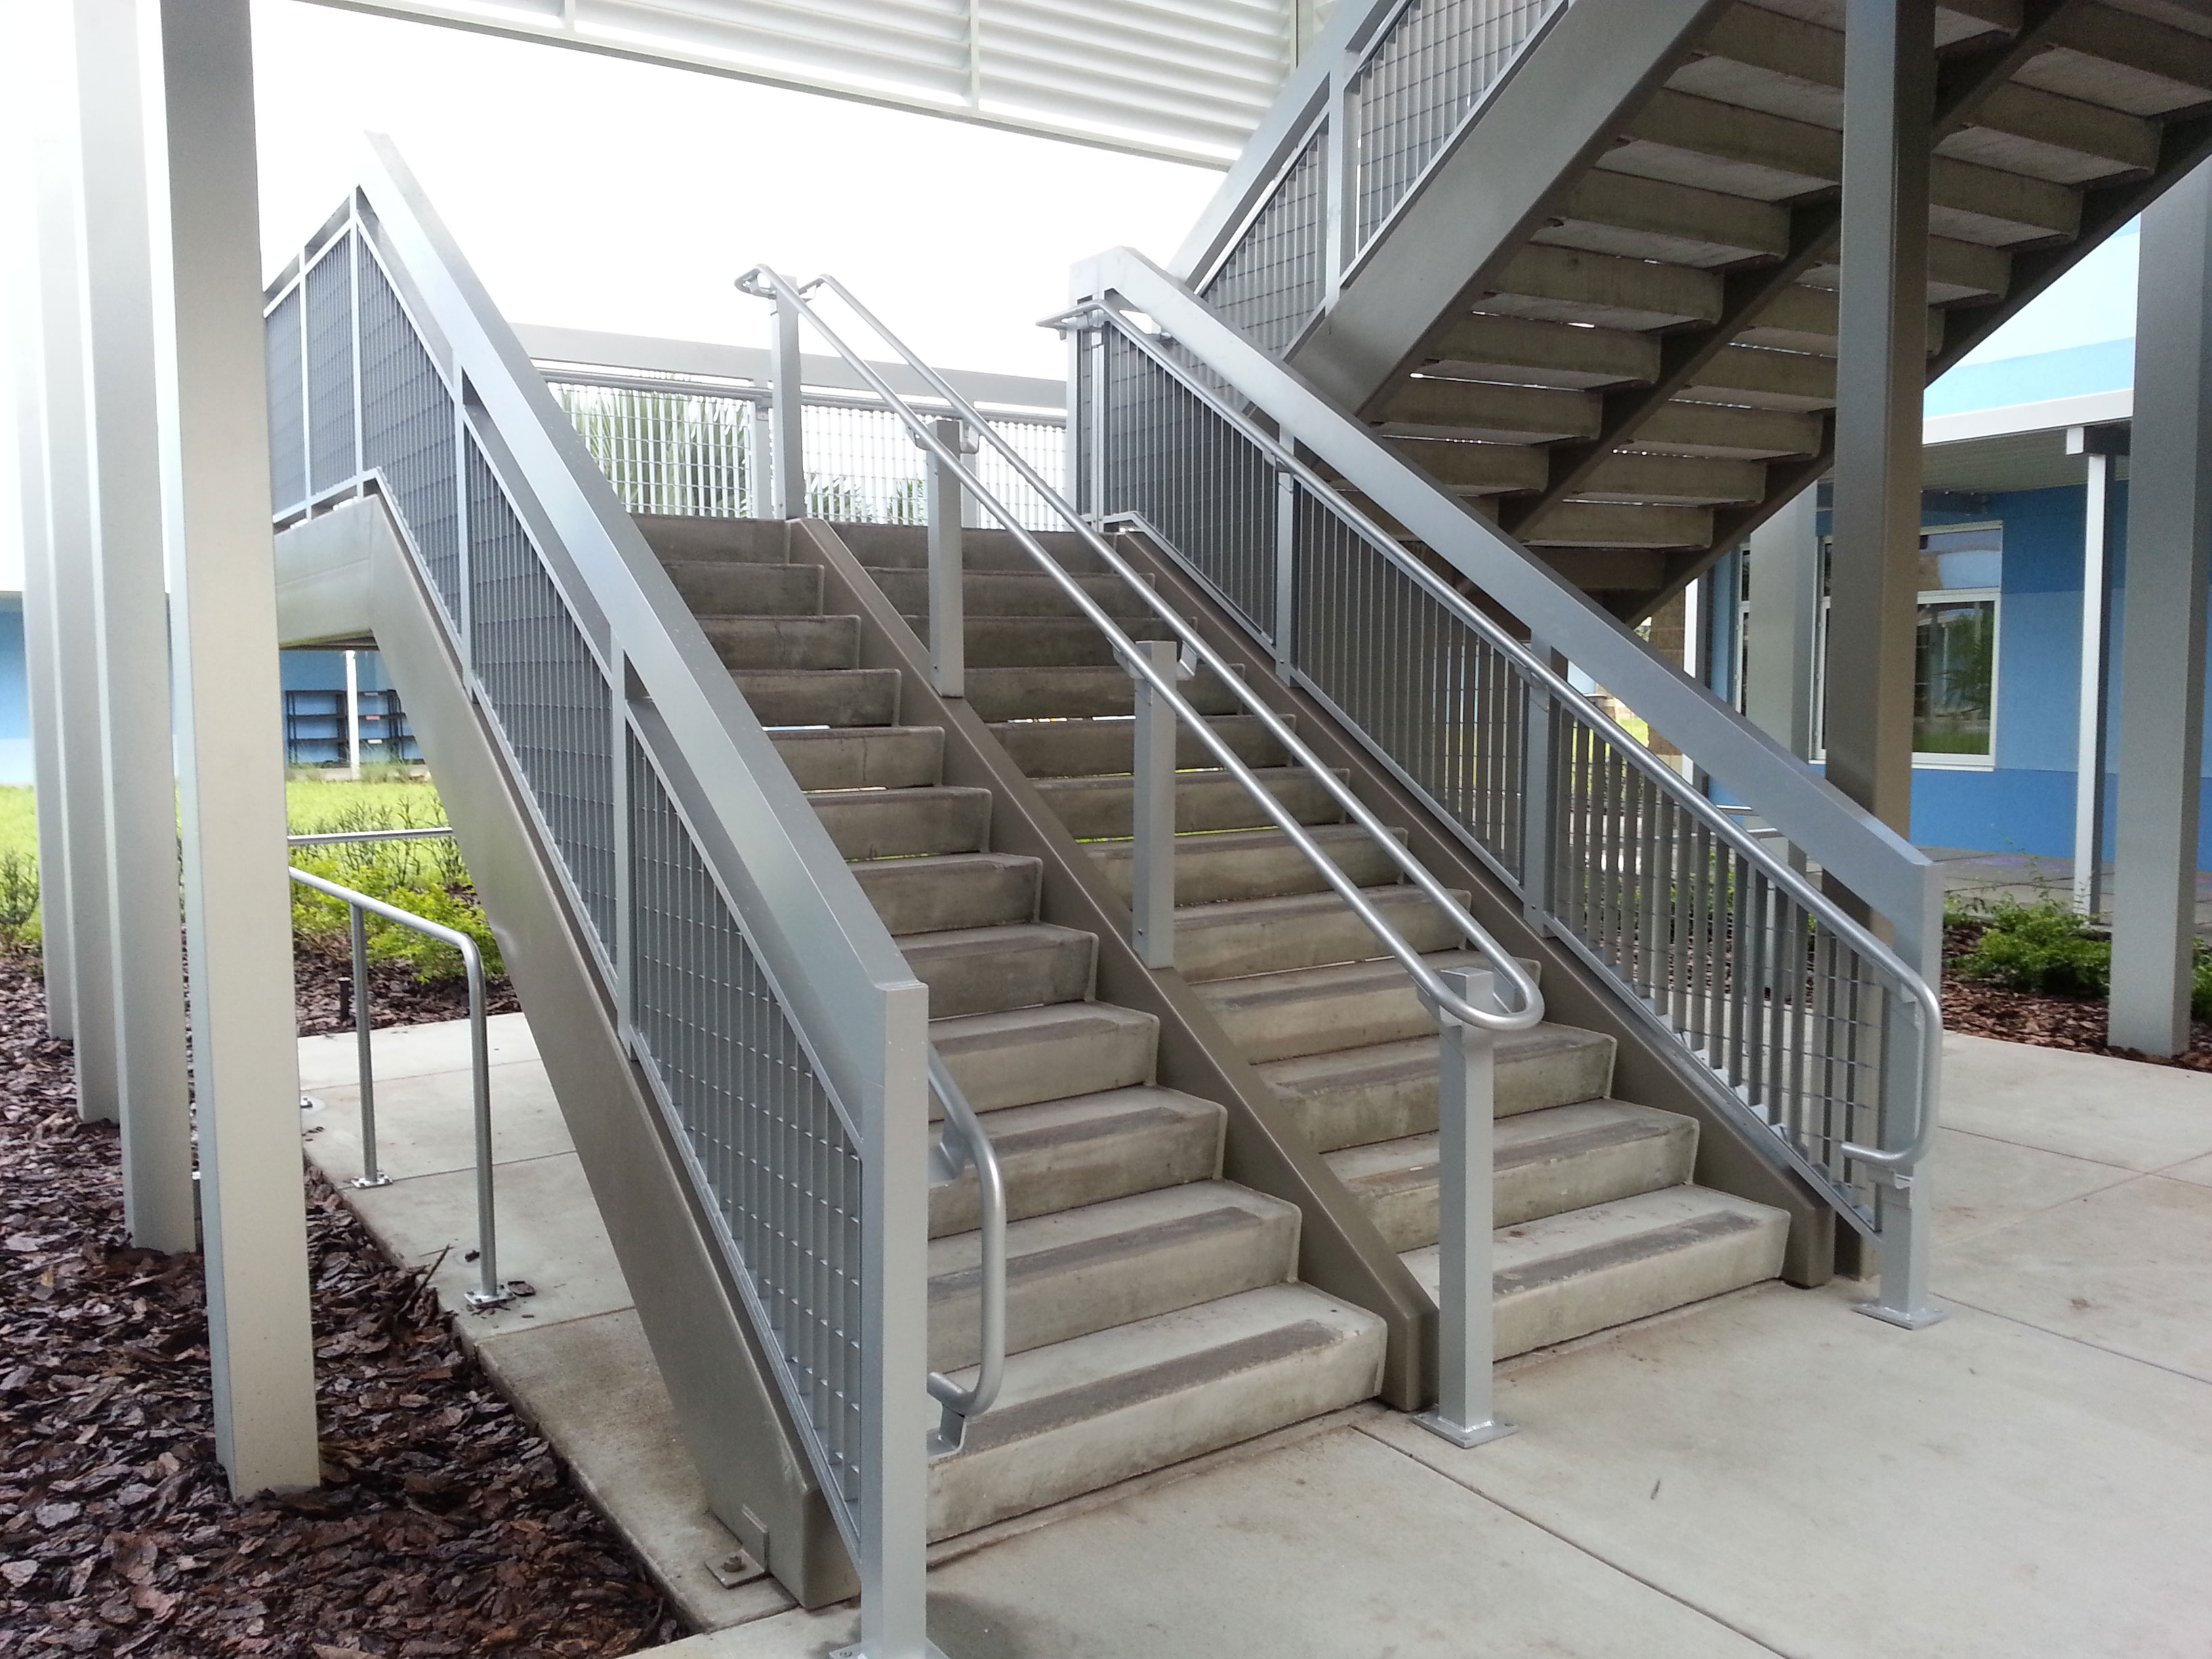 custom aluminum railings at Dawson Elementary